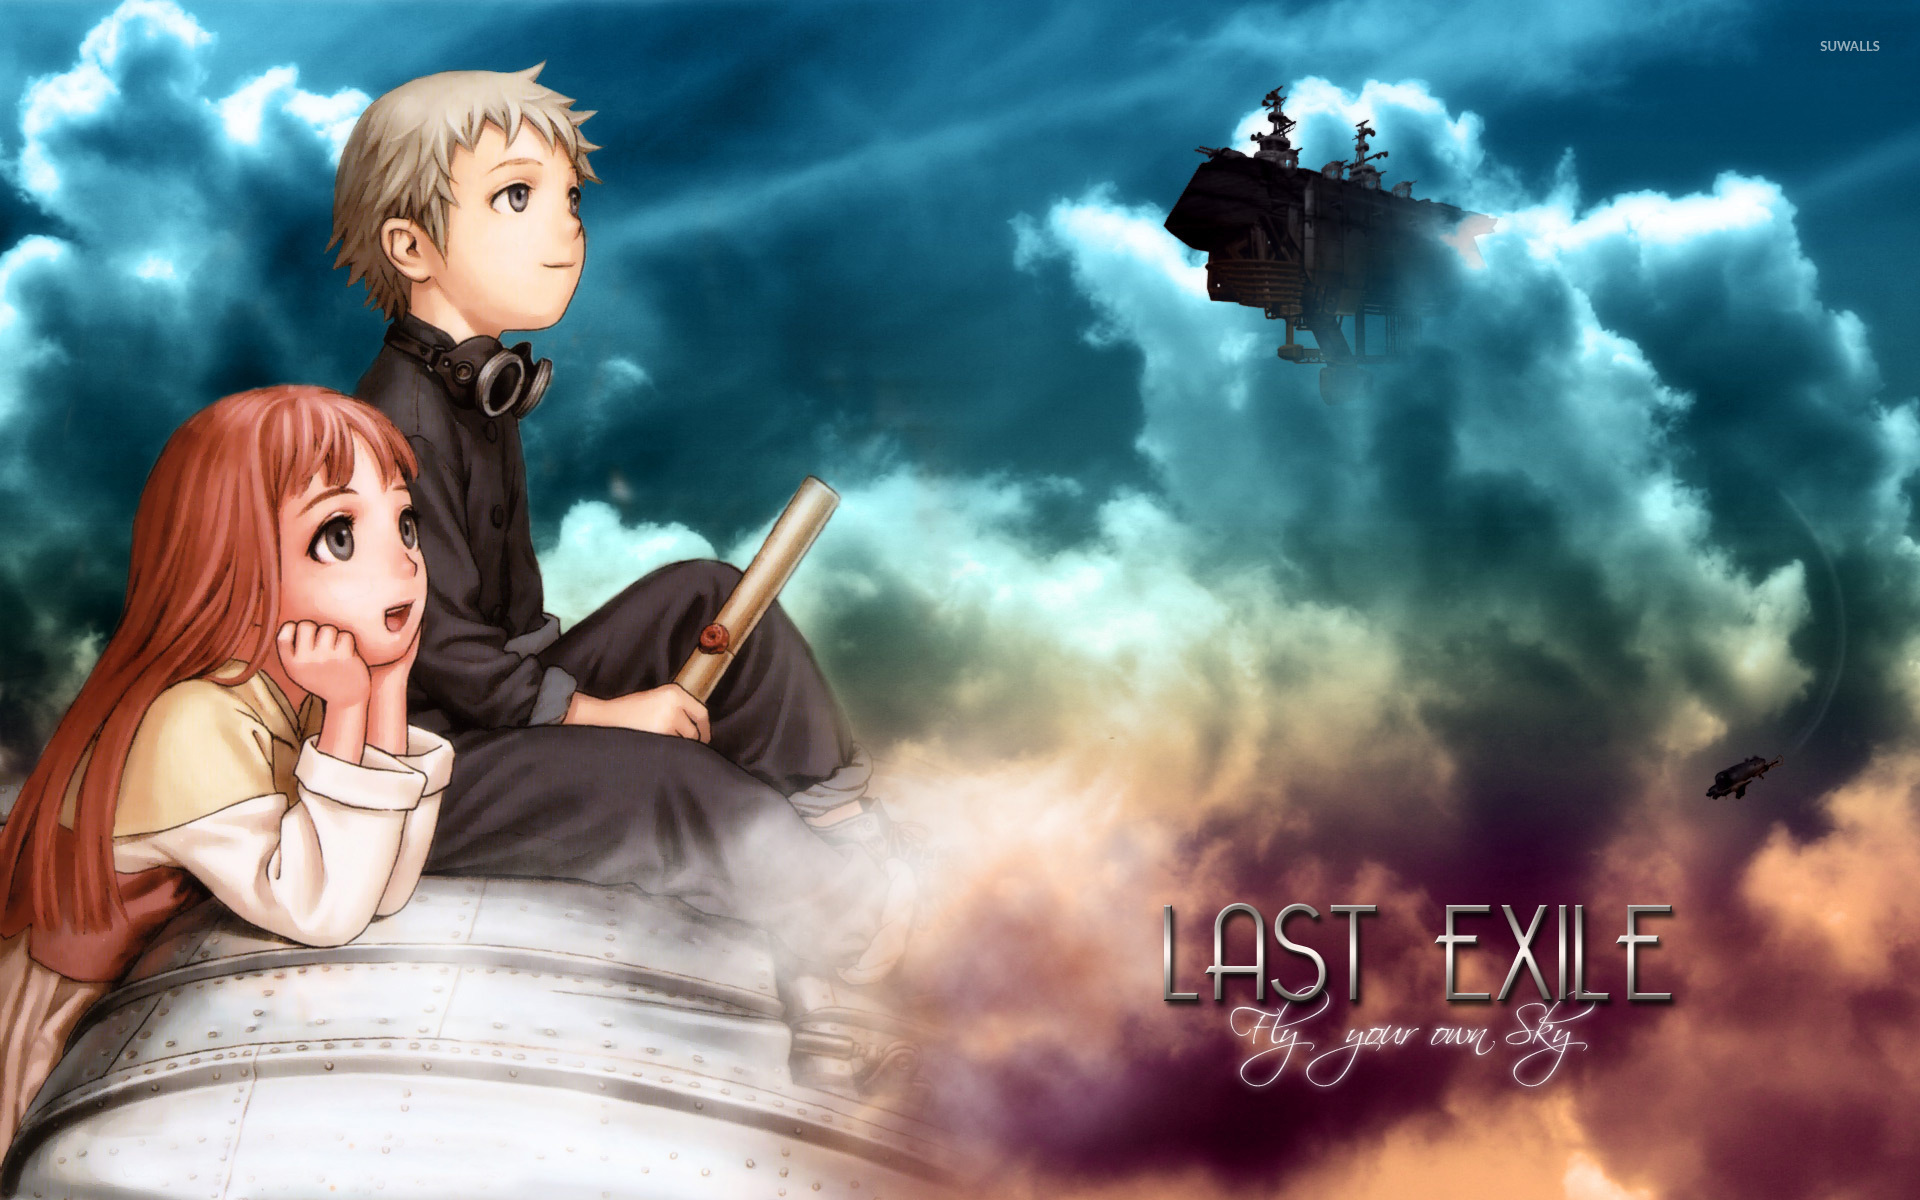 Last Exile wallpaper   Anime wallpapers   5847 1366x768